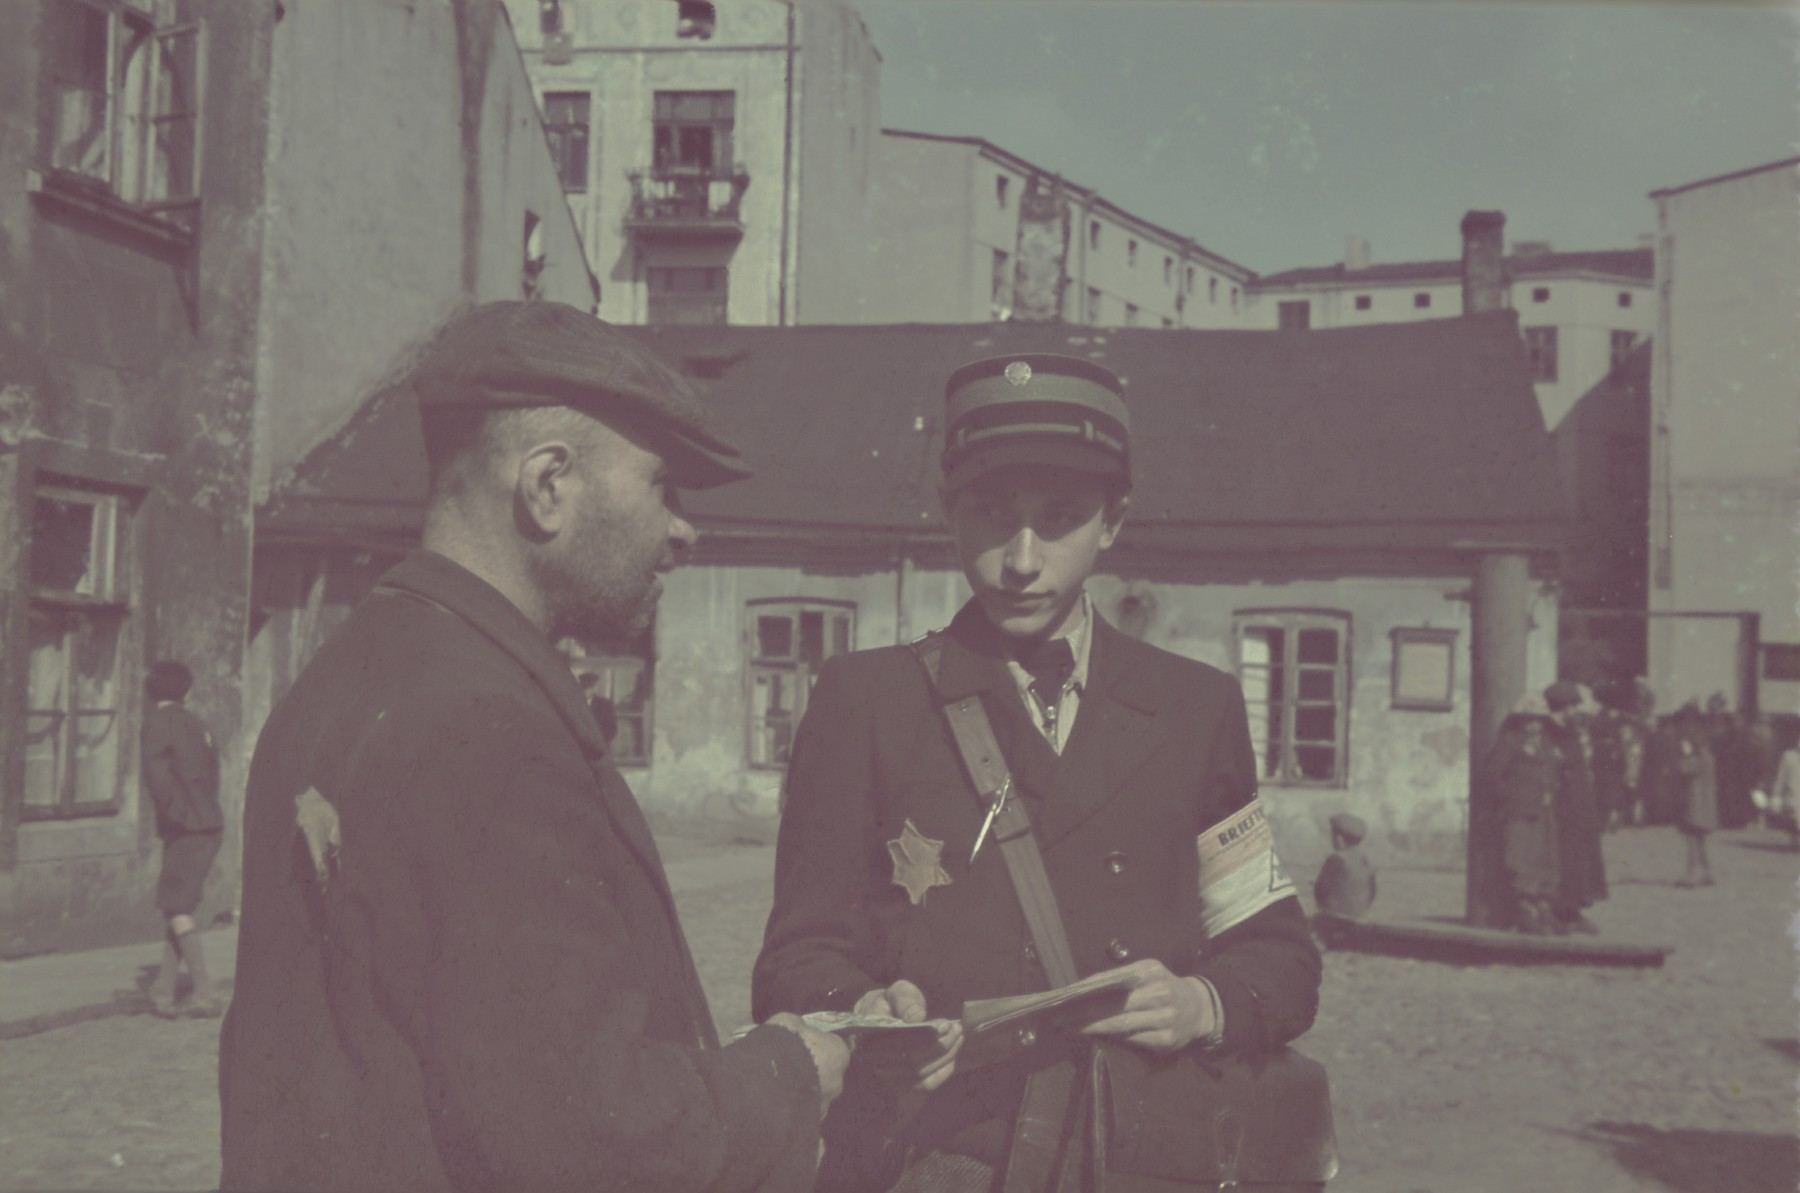 Izak Lewkowizc, a young ghetto postman delivers mail or ration cards to the ghetto resident.